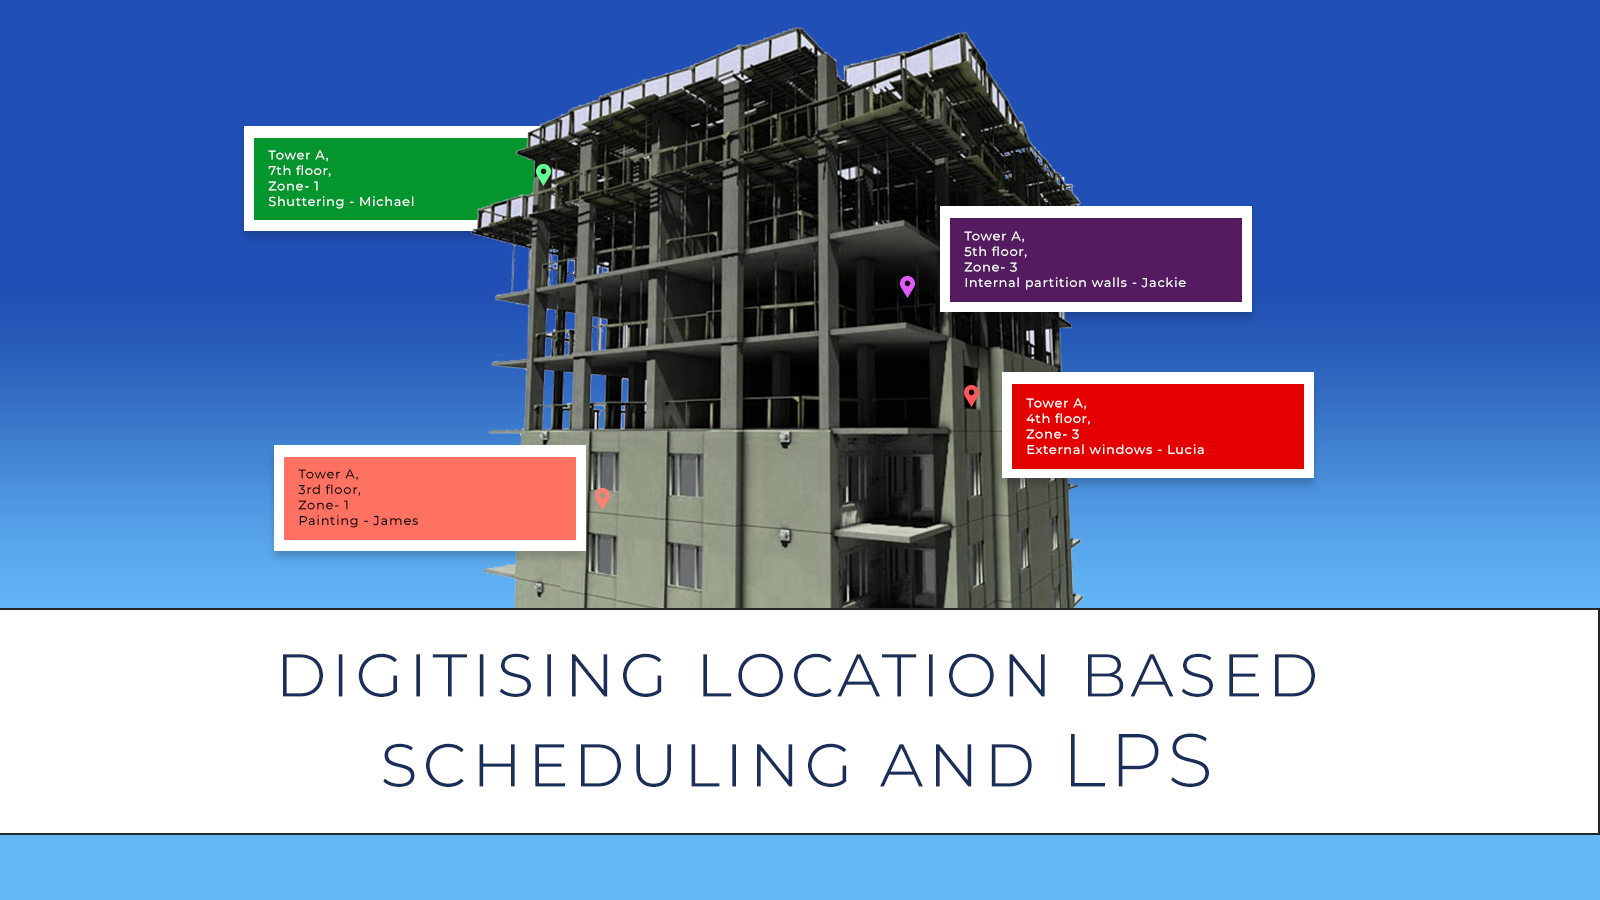 Digitising Location Based Scheduling and LPS